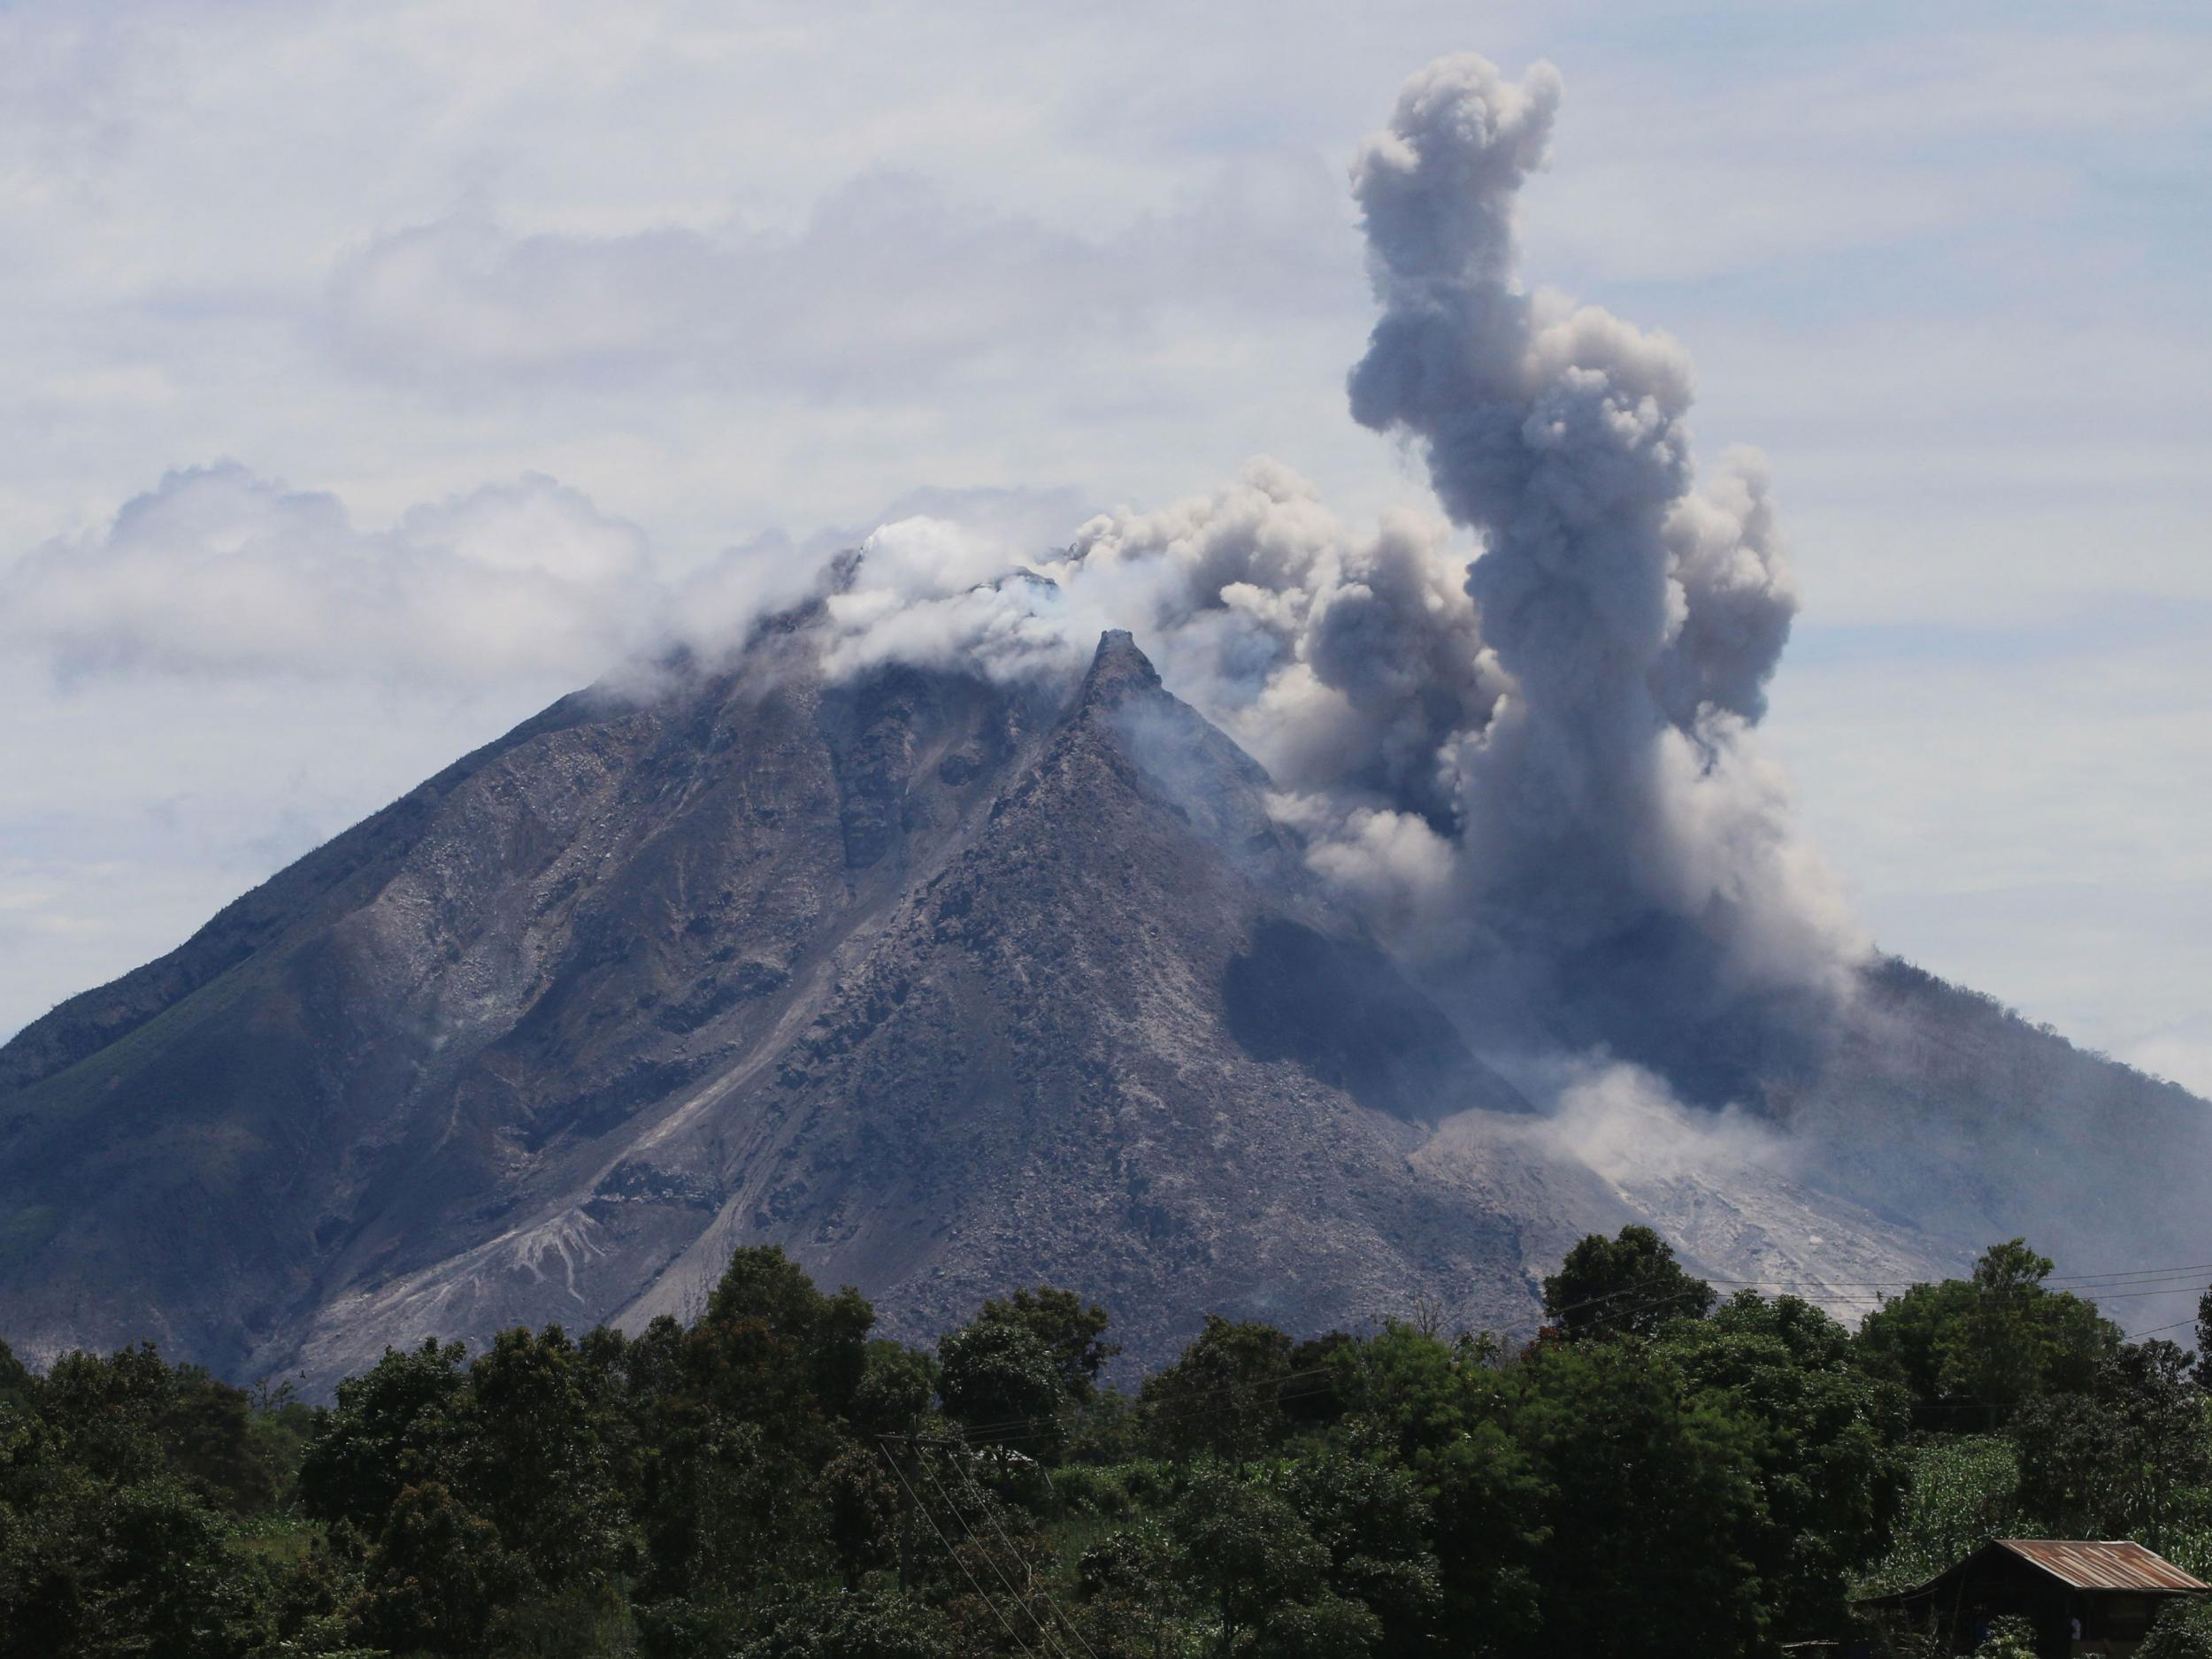 Is there any other advantages of staying on an island after a volcano eruption?